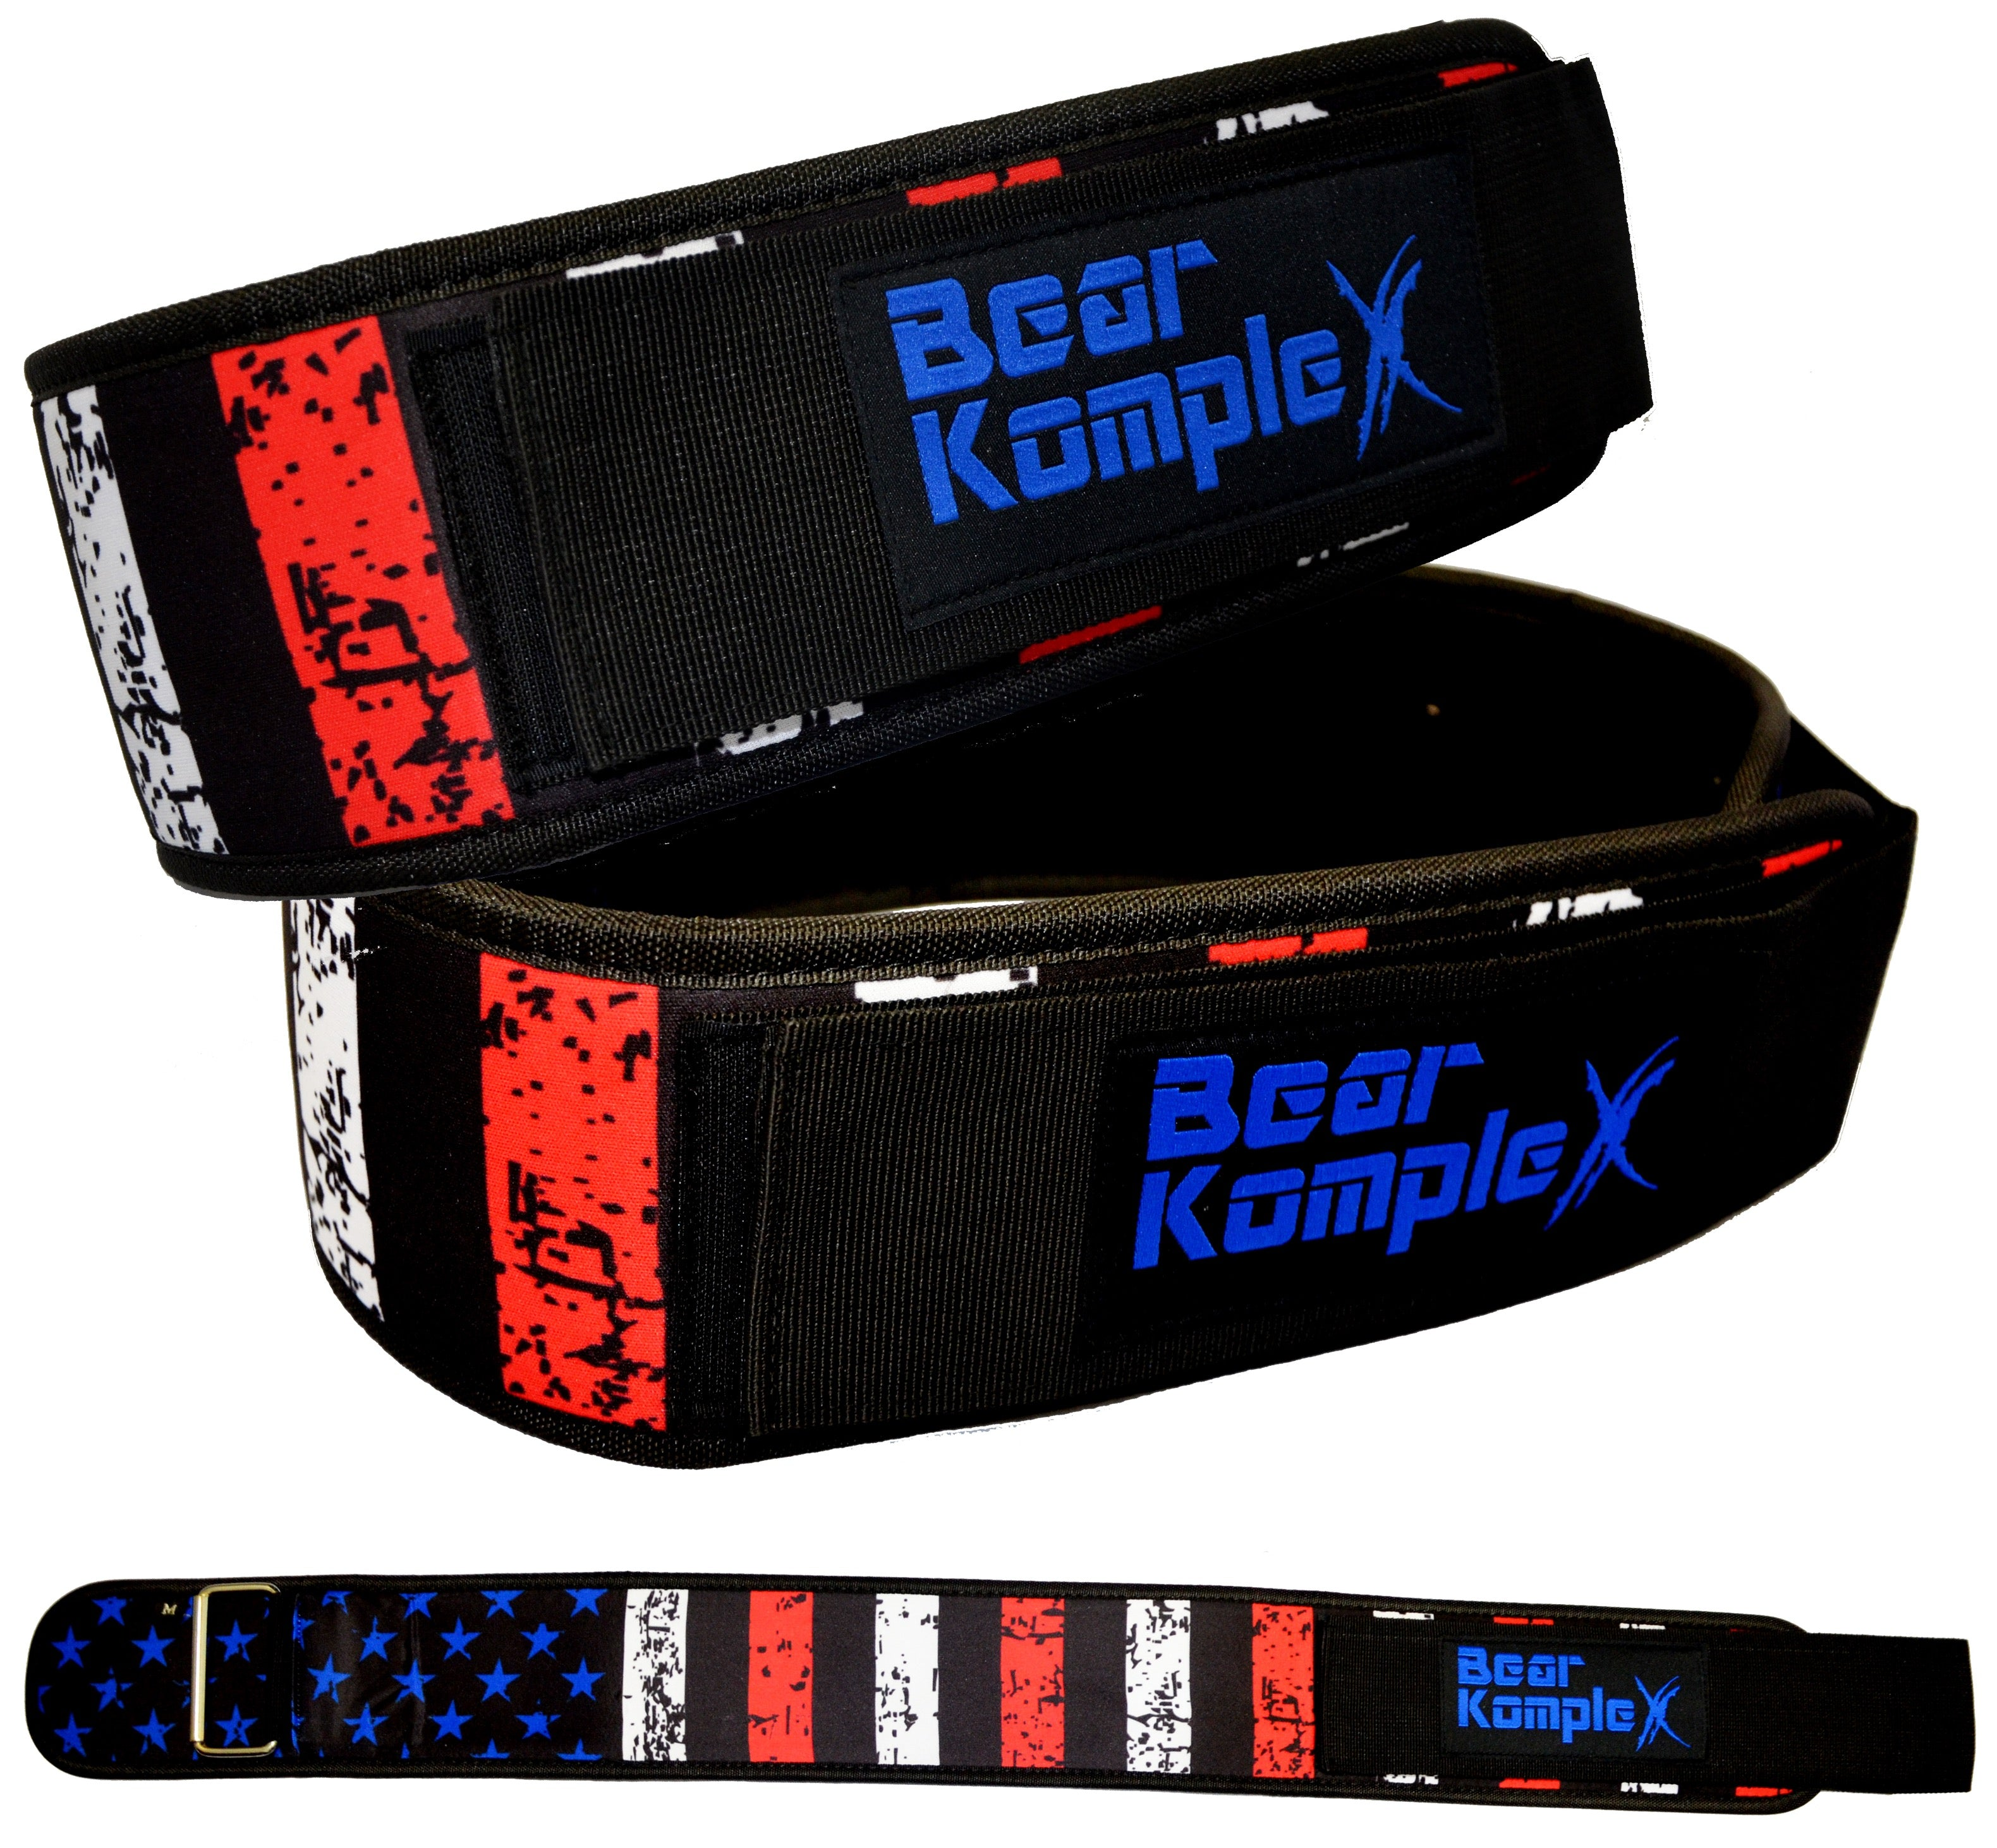 Durable and More. Cross Training Squats Weights Easily Adjustable Bear KompleX 6 Strength Weightlifting Belt for Men /& Women Low Profile with Super Firm Back for Support During Powerlifting